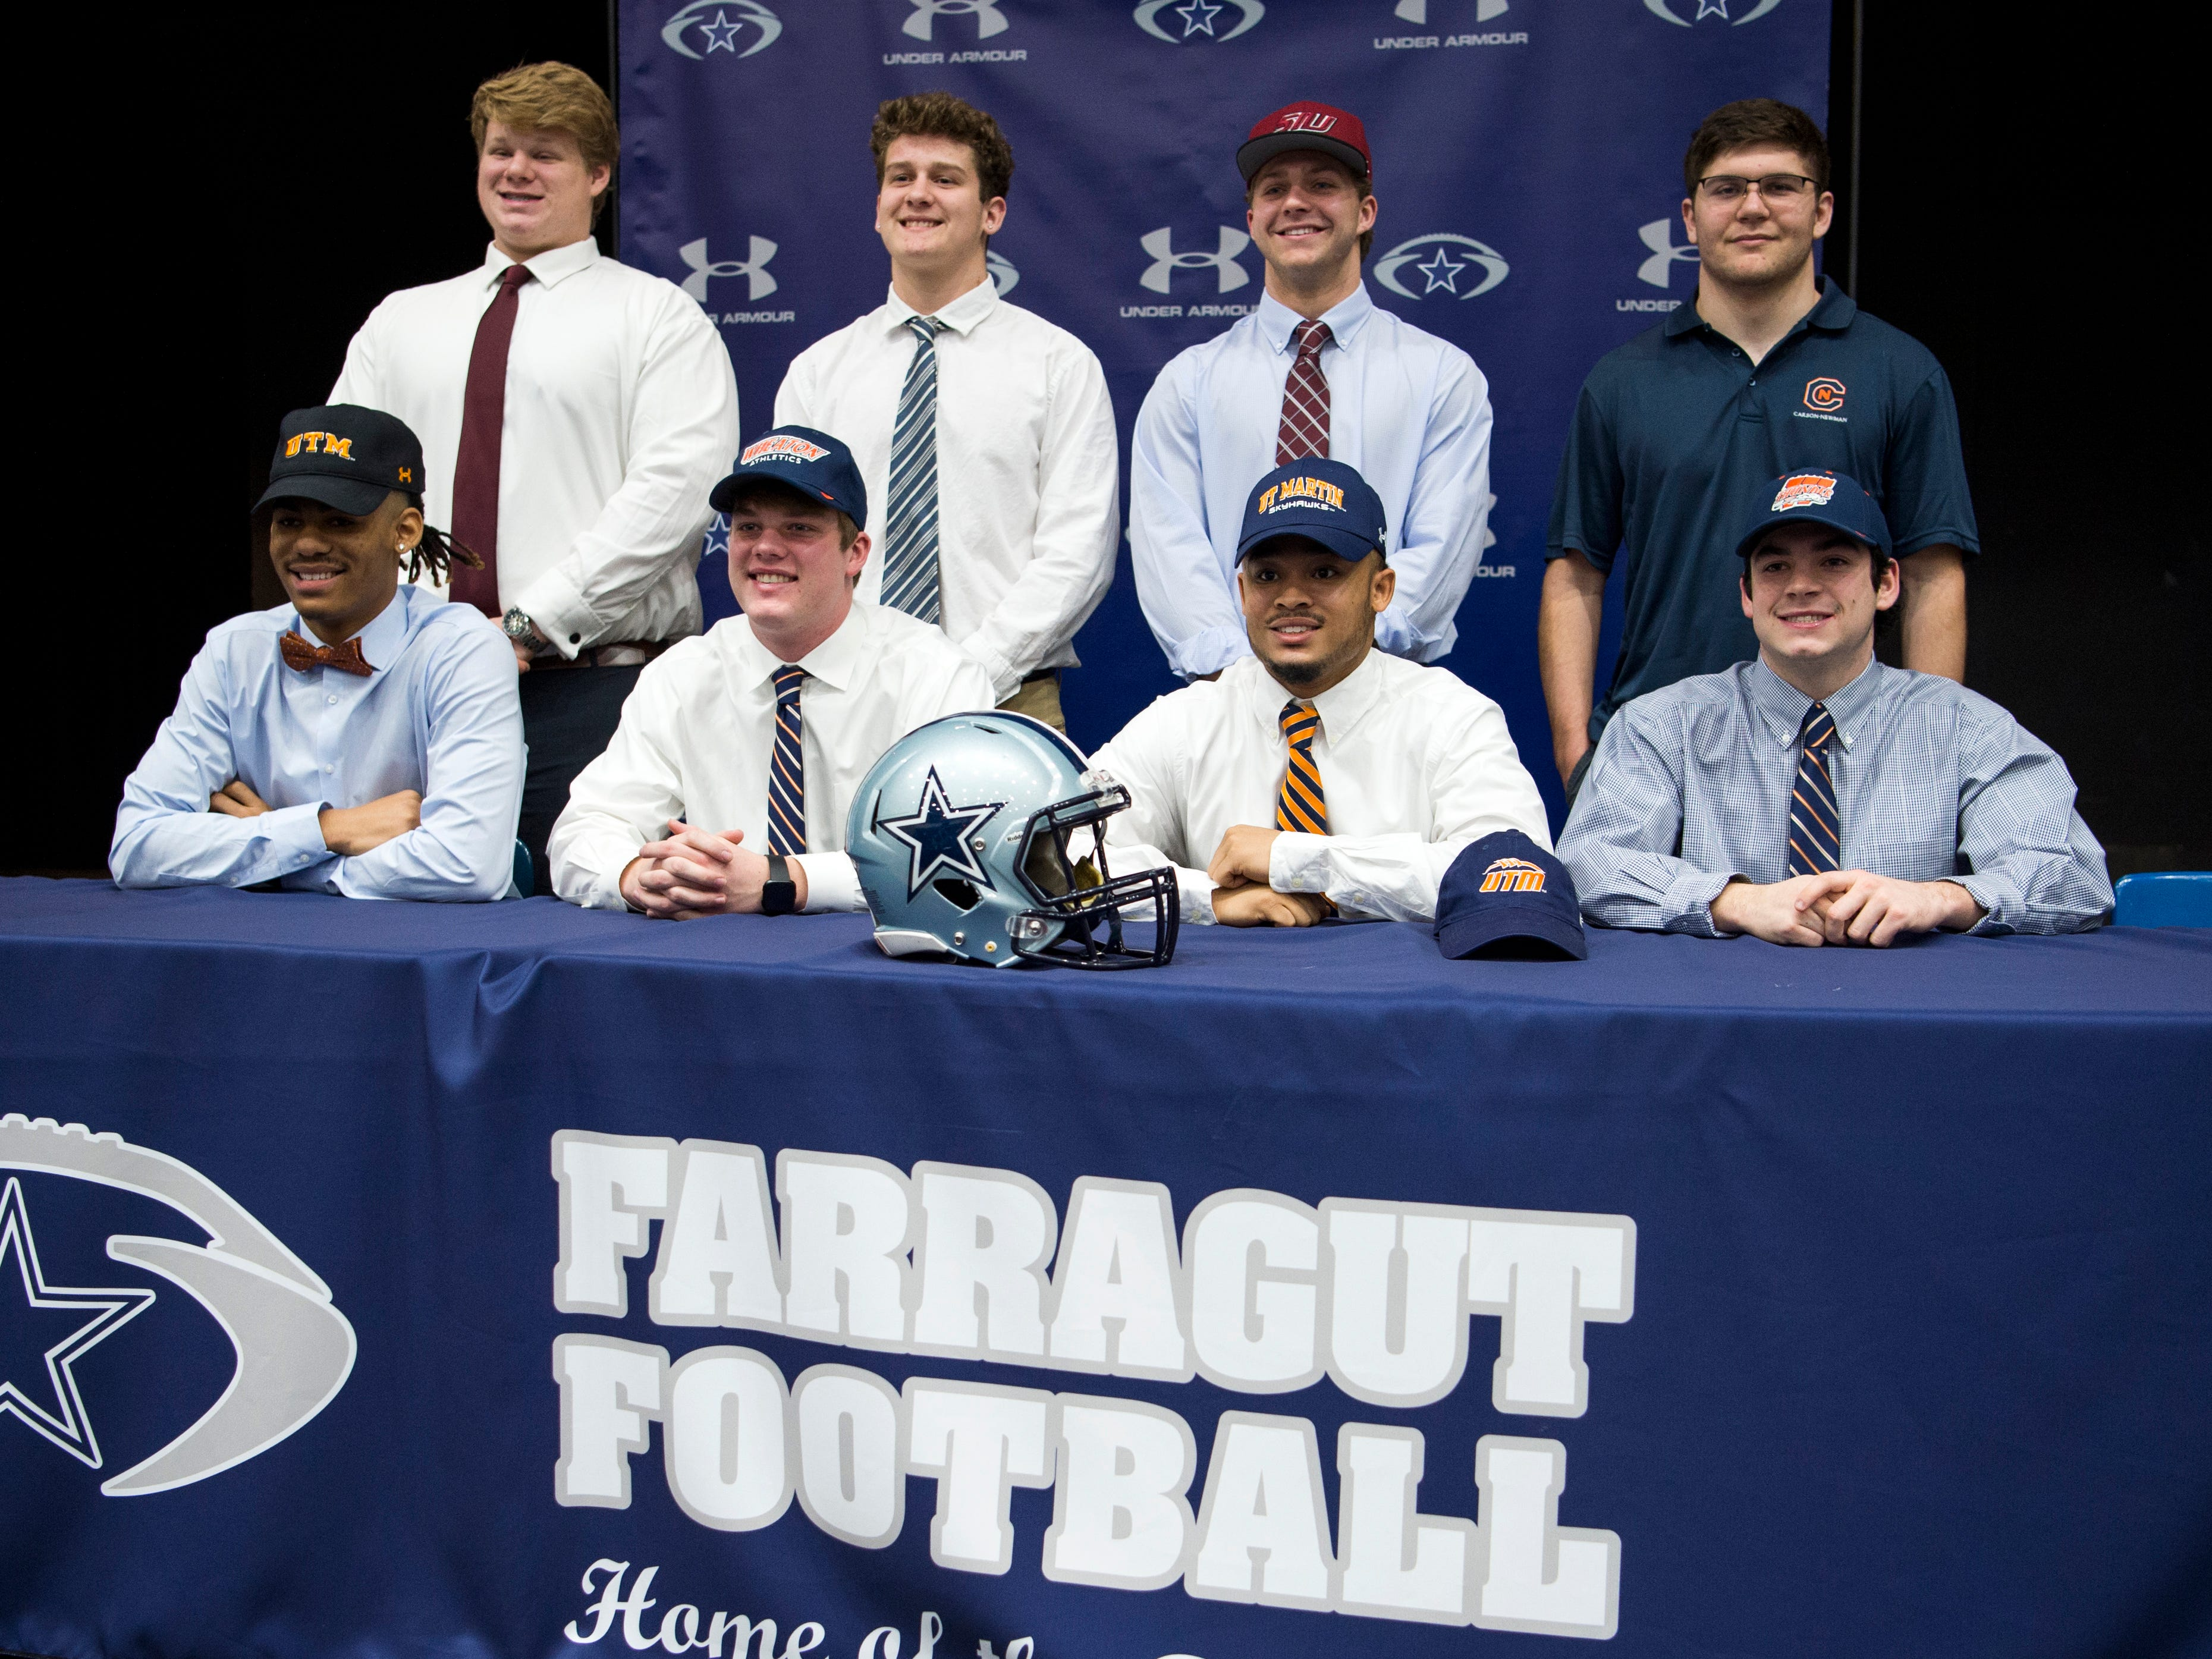 Farragut football players sport their new school colors at the FHS auditorium on National Signing Day, Feb. 6, 2019. Pictured are (front) Jaden Gibbs (UT Martin), Caleb Kuhn (Wheaton College), Isiah Gibbs (UT Martin), Kyle Carter (Wheaton College); (back) Ethan Gossage (Campbellsville), Jake Parsons (Carson-Newman), Tanner Corum (Southern Illinois) and Joey Dietz (Carson-Newman).